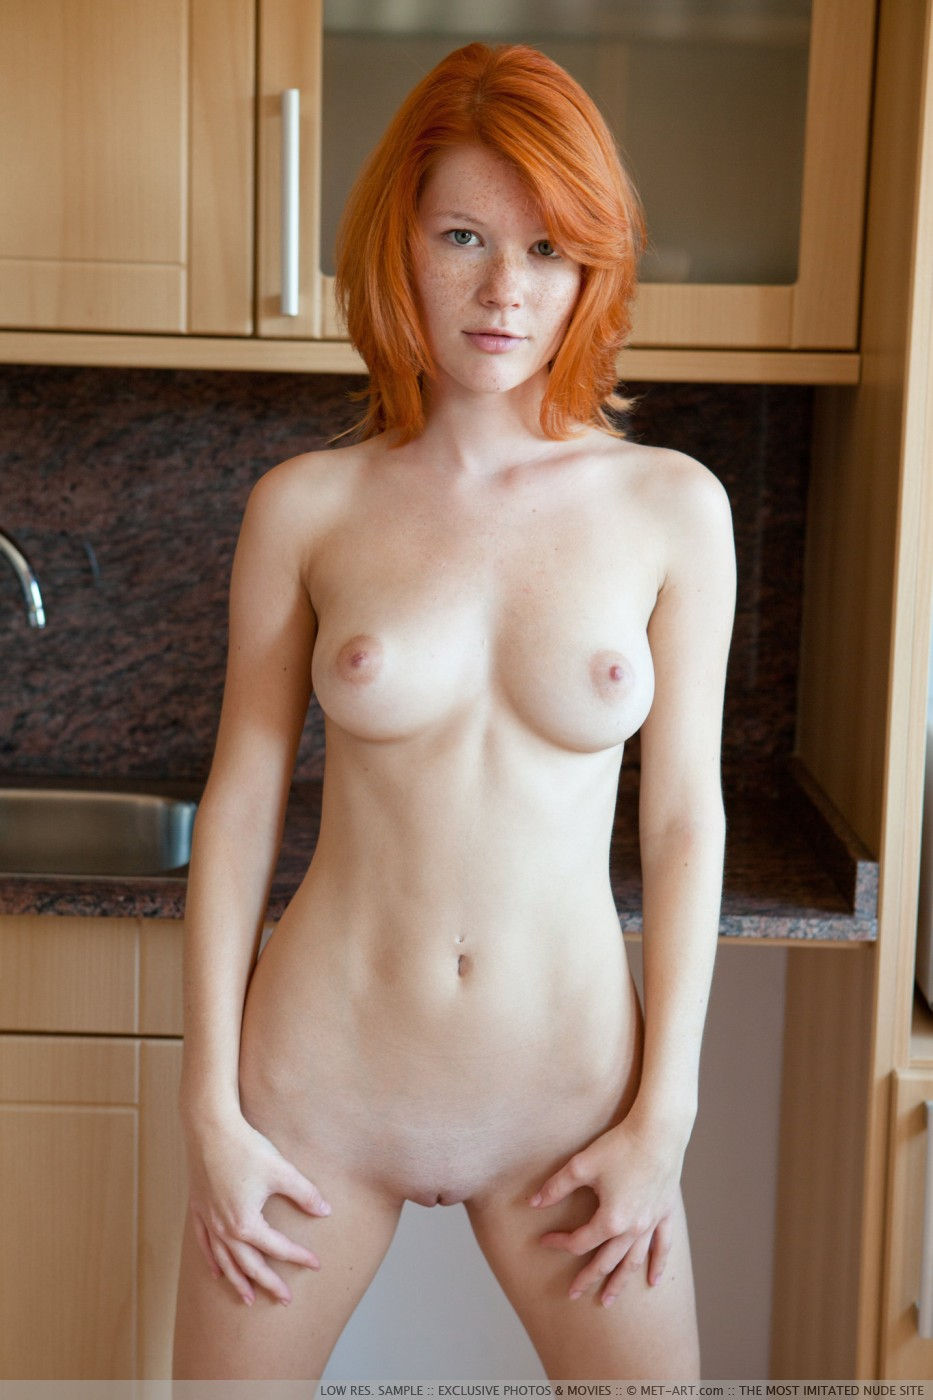 Look hot pic redhead tripping balls and